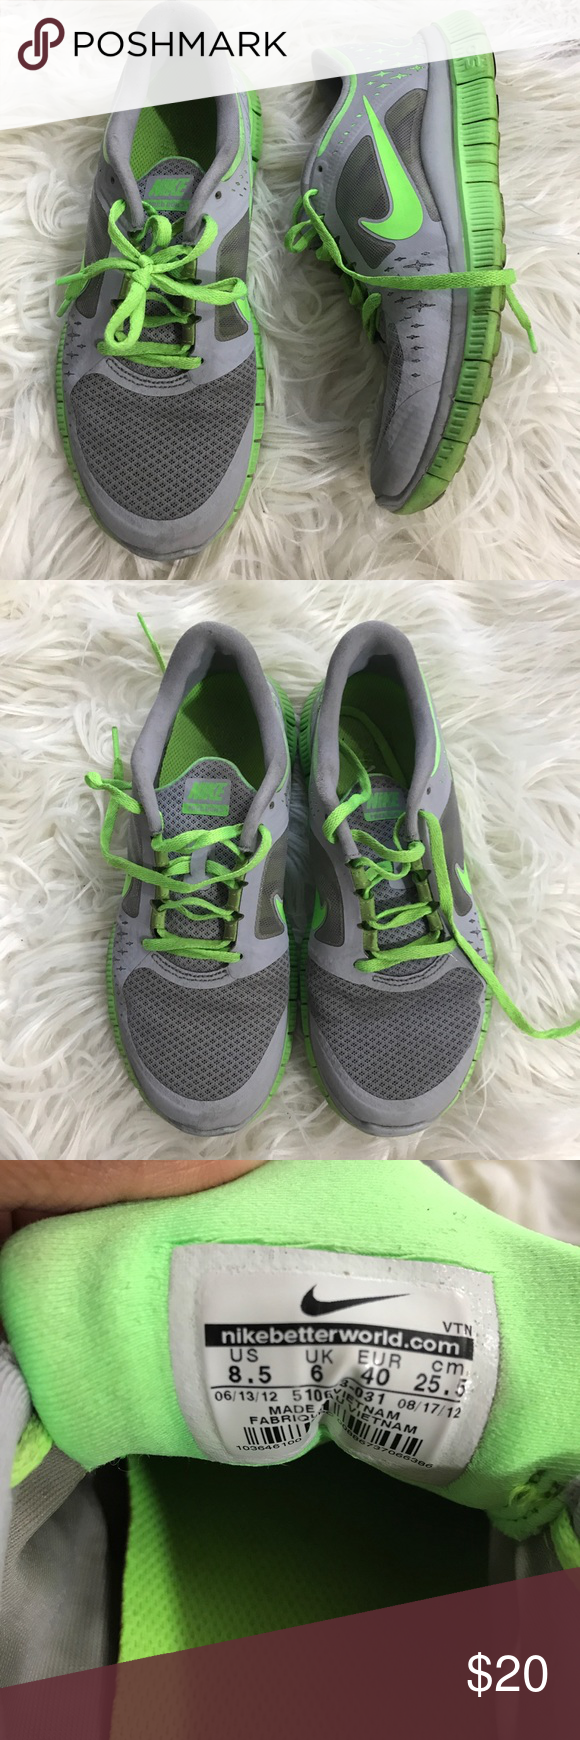 1c861677c881 Nike free run 3 grey green running shoes 8.5 Nike women s free run 3 wolf  grey electric green running shoes size 8.5. Has wear and tear (see photos)  but in ...